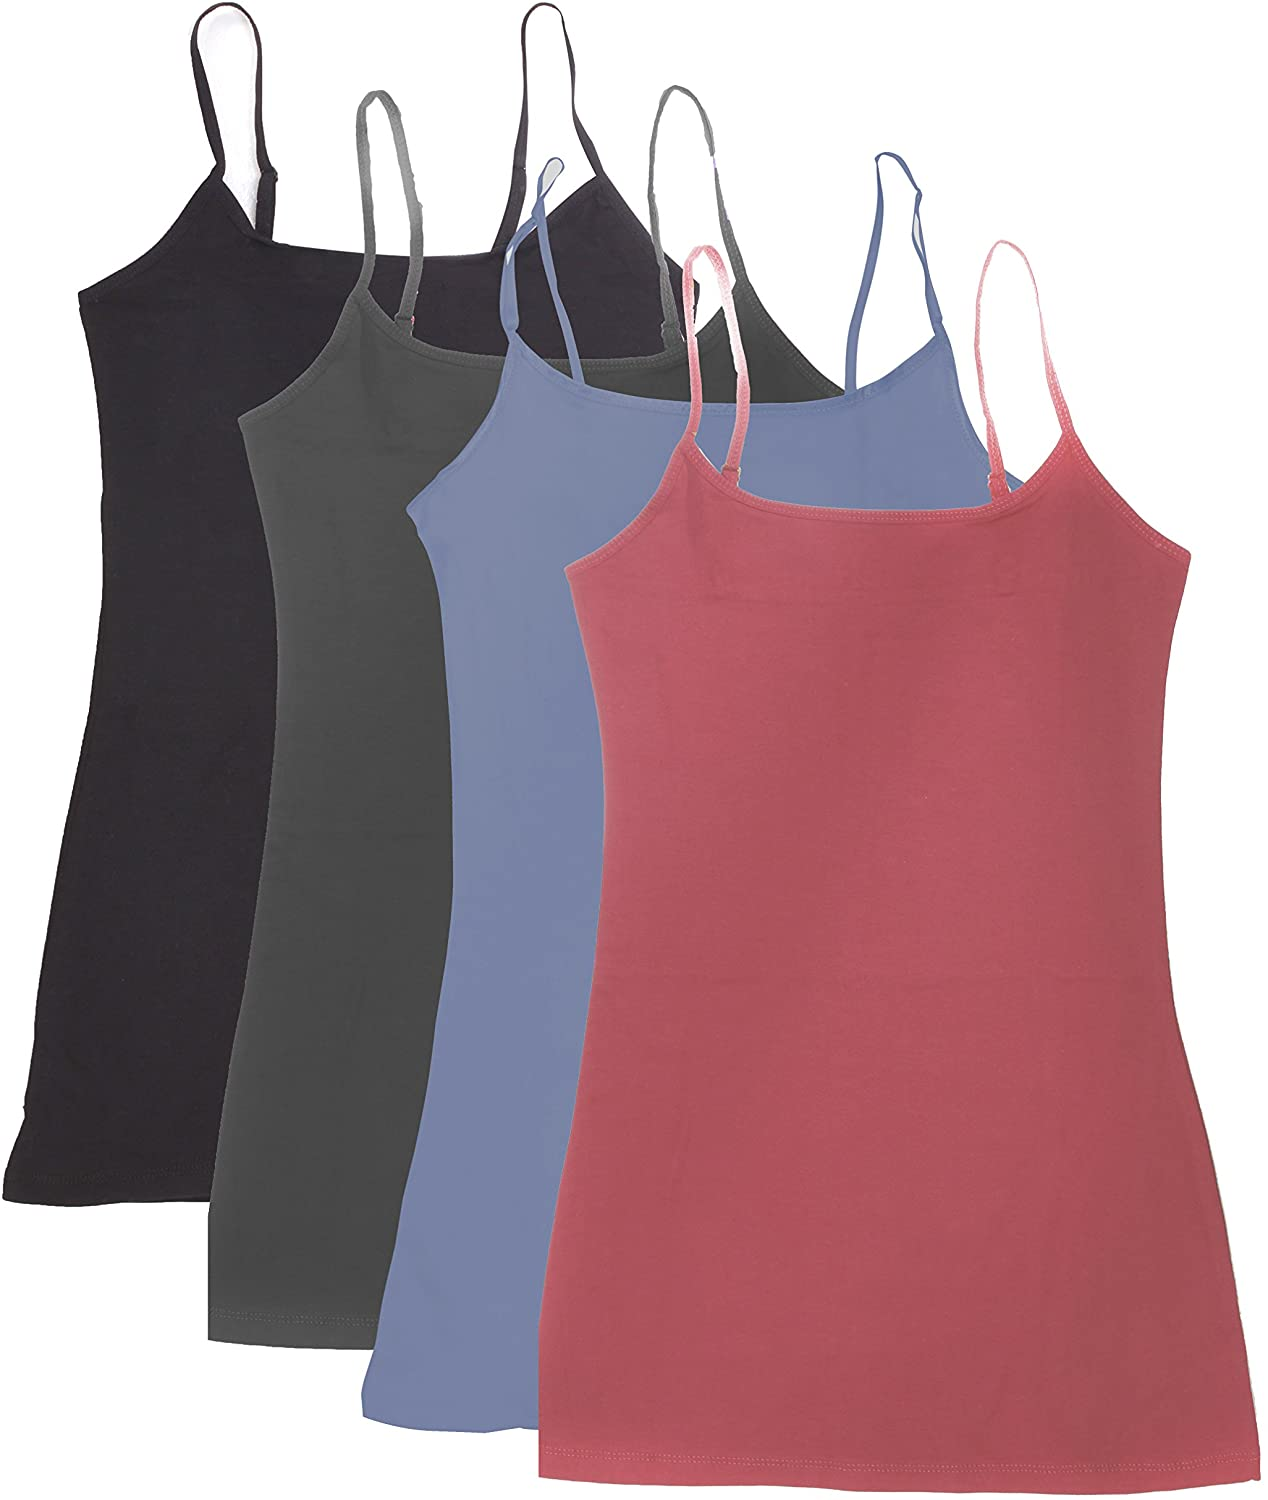 4 Pack Active Basic Womens Basic Tank Top (M-Dst Rs/Dnm Blu/Chcl/Bk)